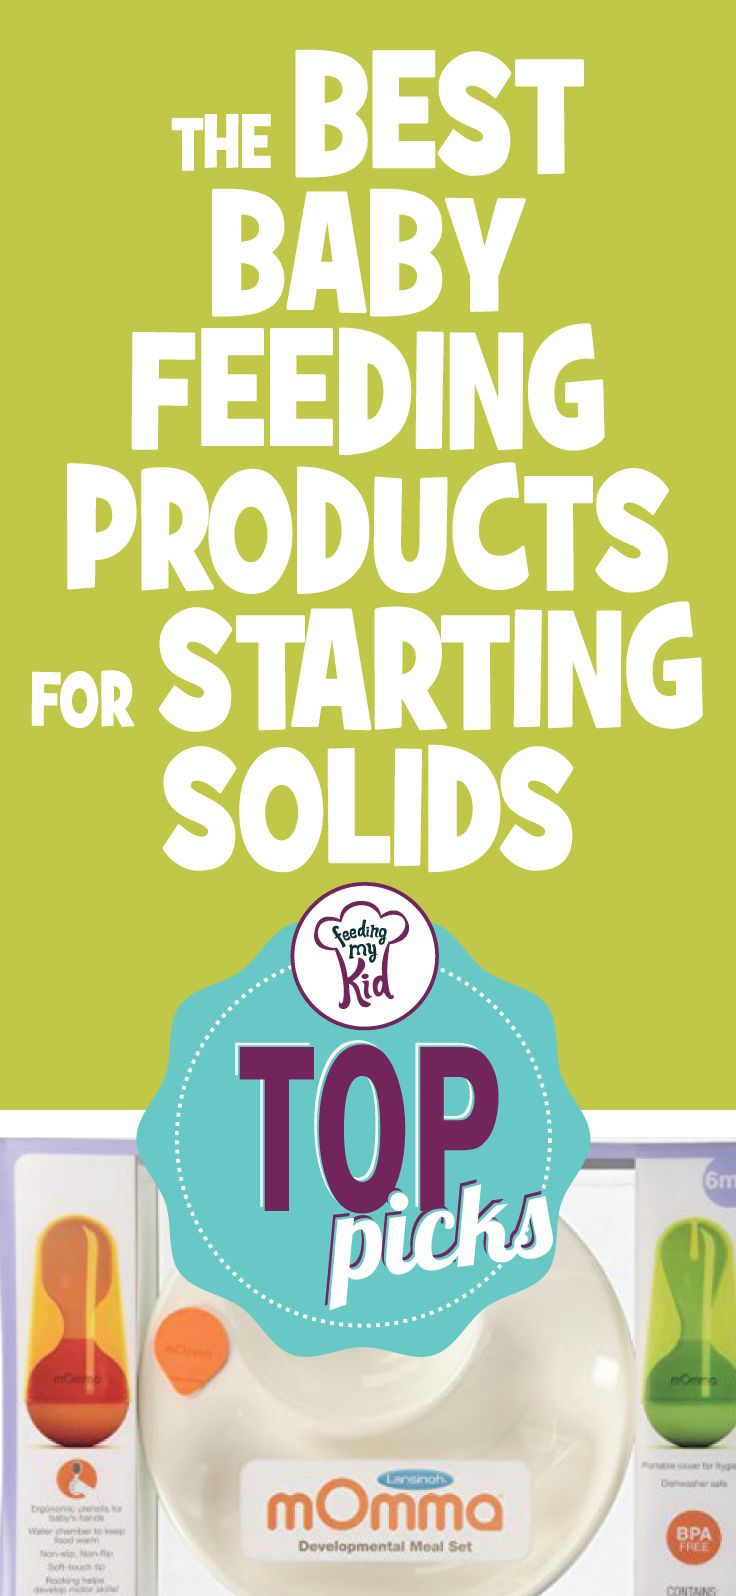 Top Picks: The Best Baby Feeding Products For Starting Solids - This is a must Pin! From flap gerber cereal rice to a munchkin fresh food feeder; these products are here to help you feed your kid. This is a must pin! #fmk #feedingsolids #introducingsolids #babyfeeding